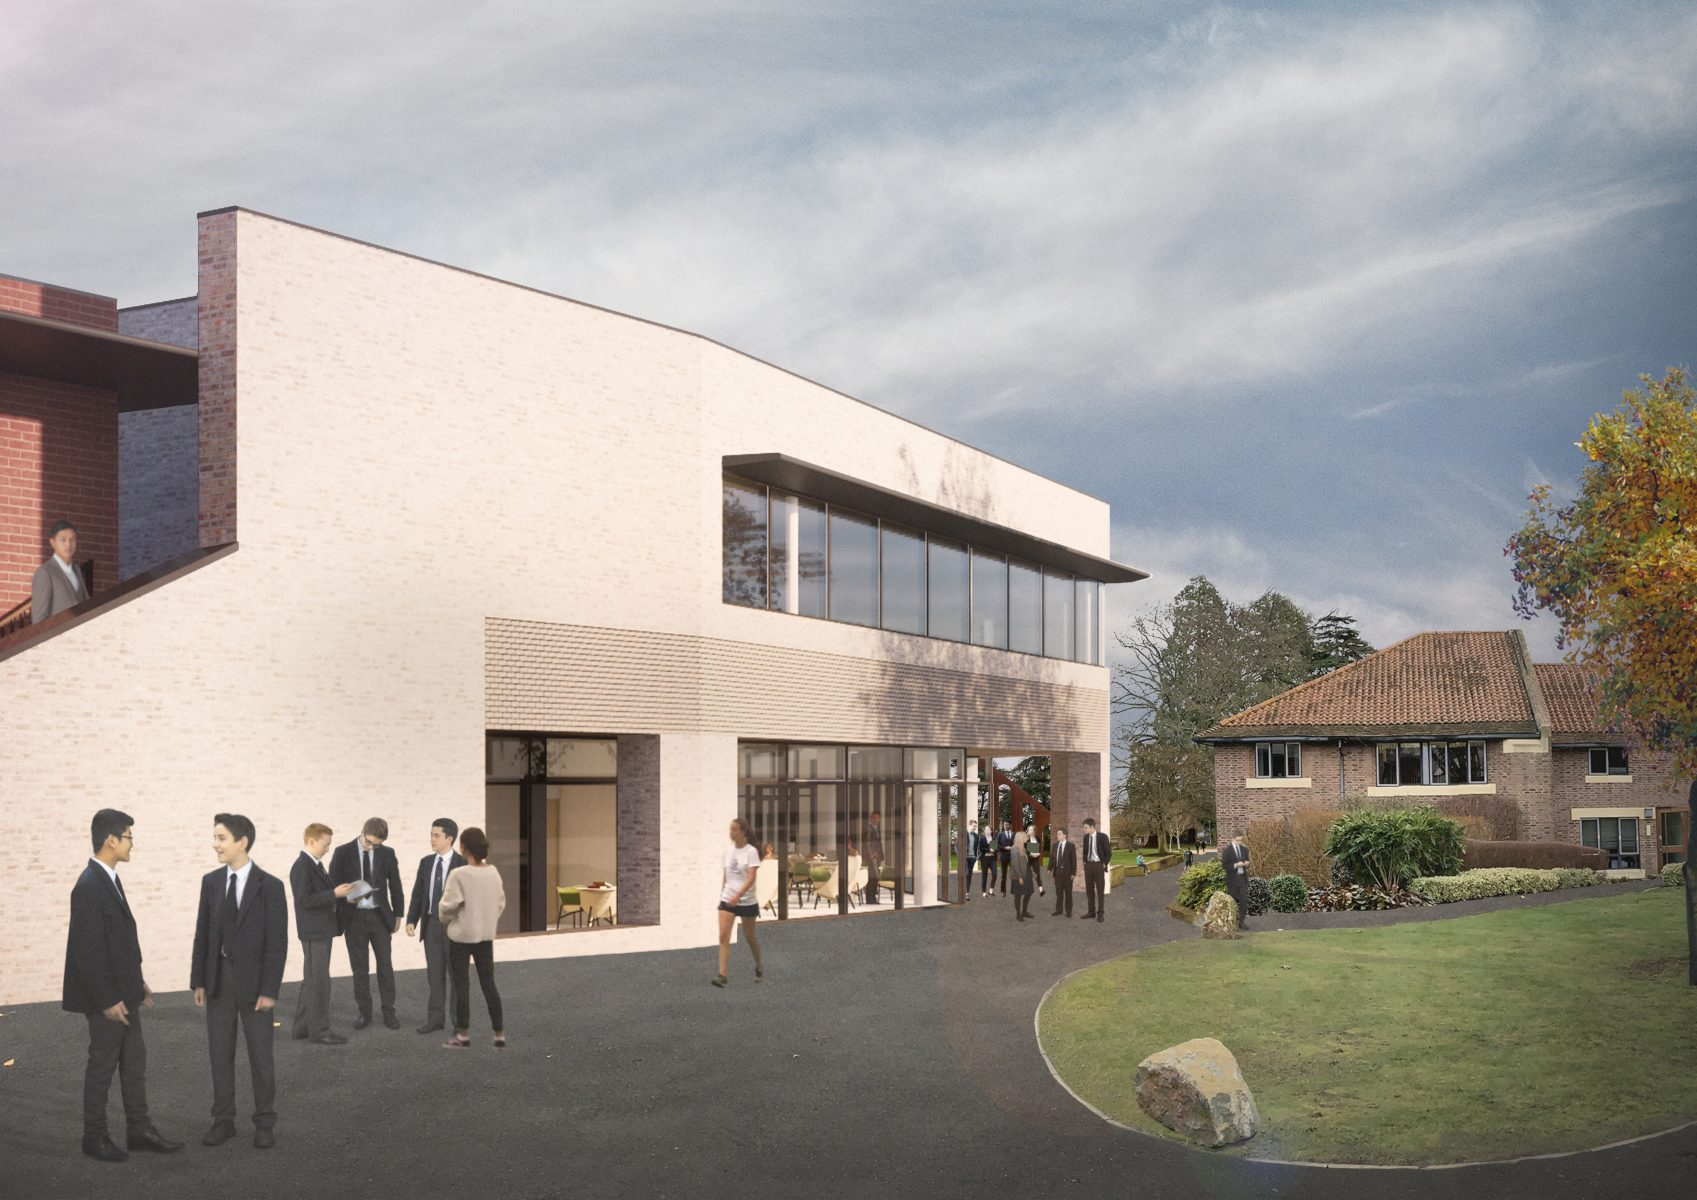 Millfield School, Library Building Refurbishment and Extension